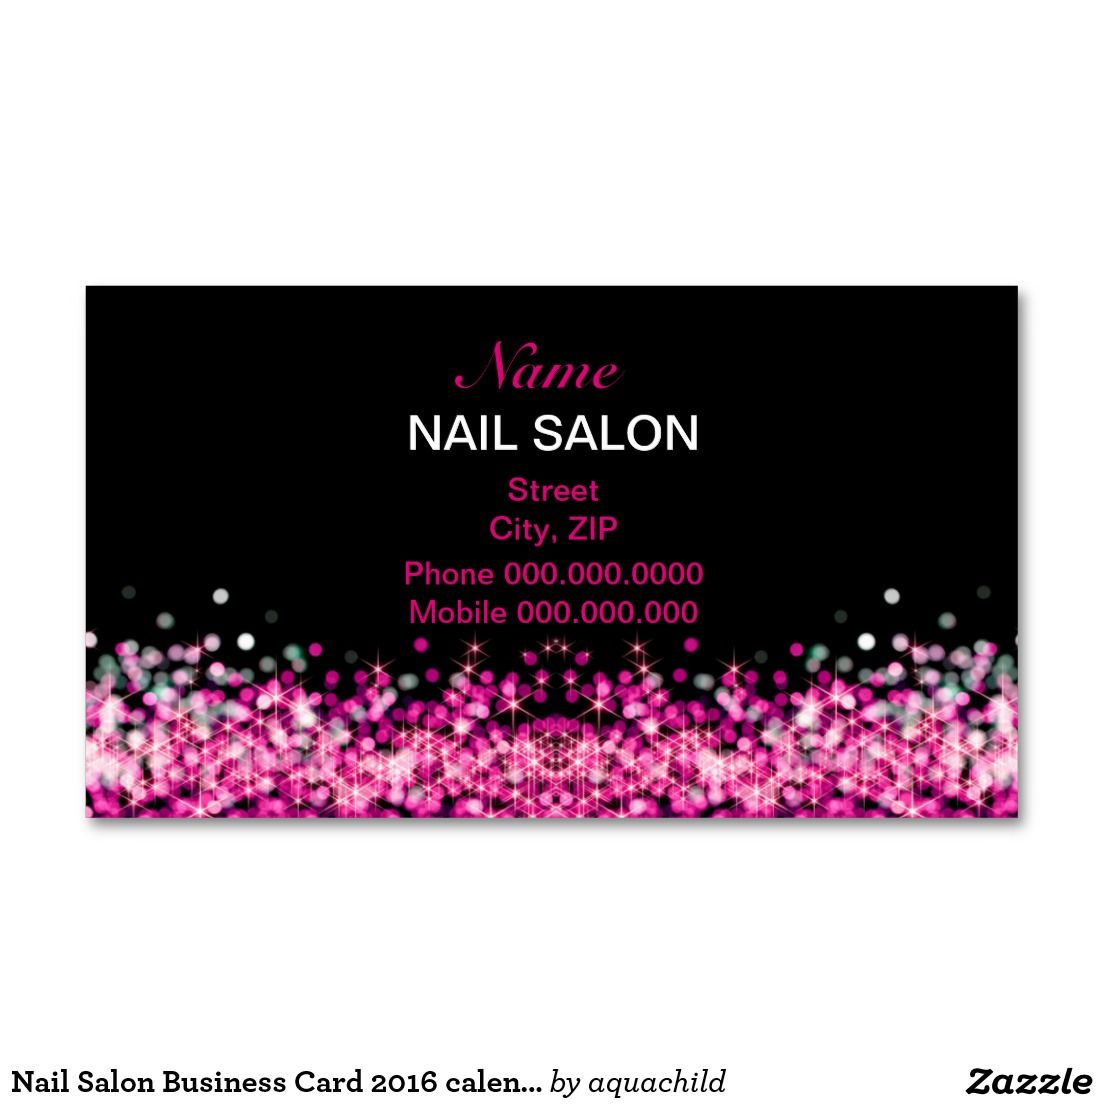 Nail salon business card 2016 calendar nail salons for Nails business cards design